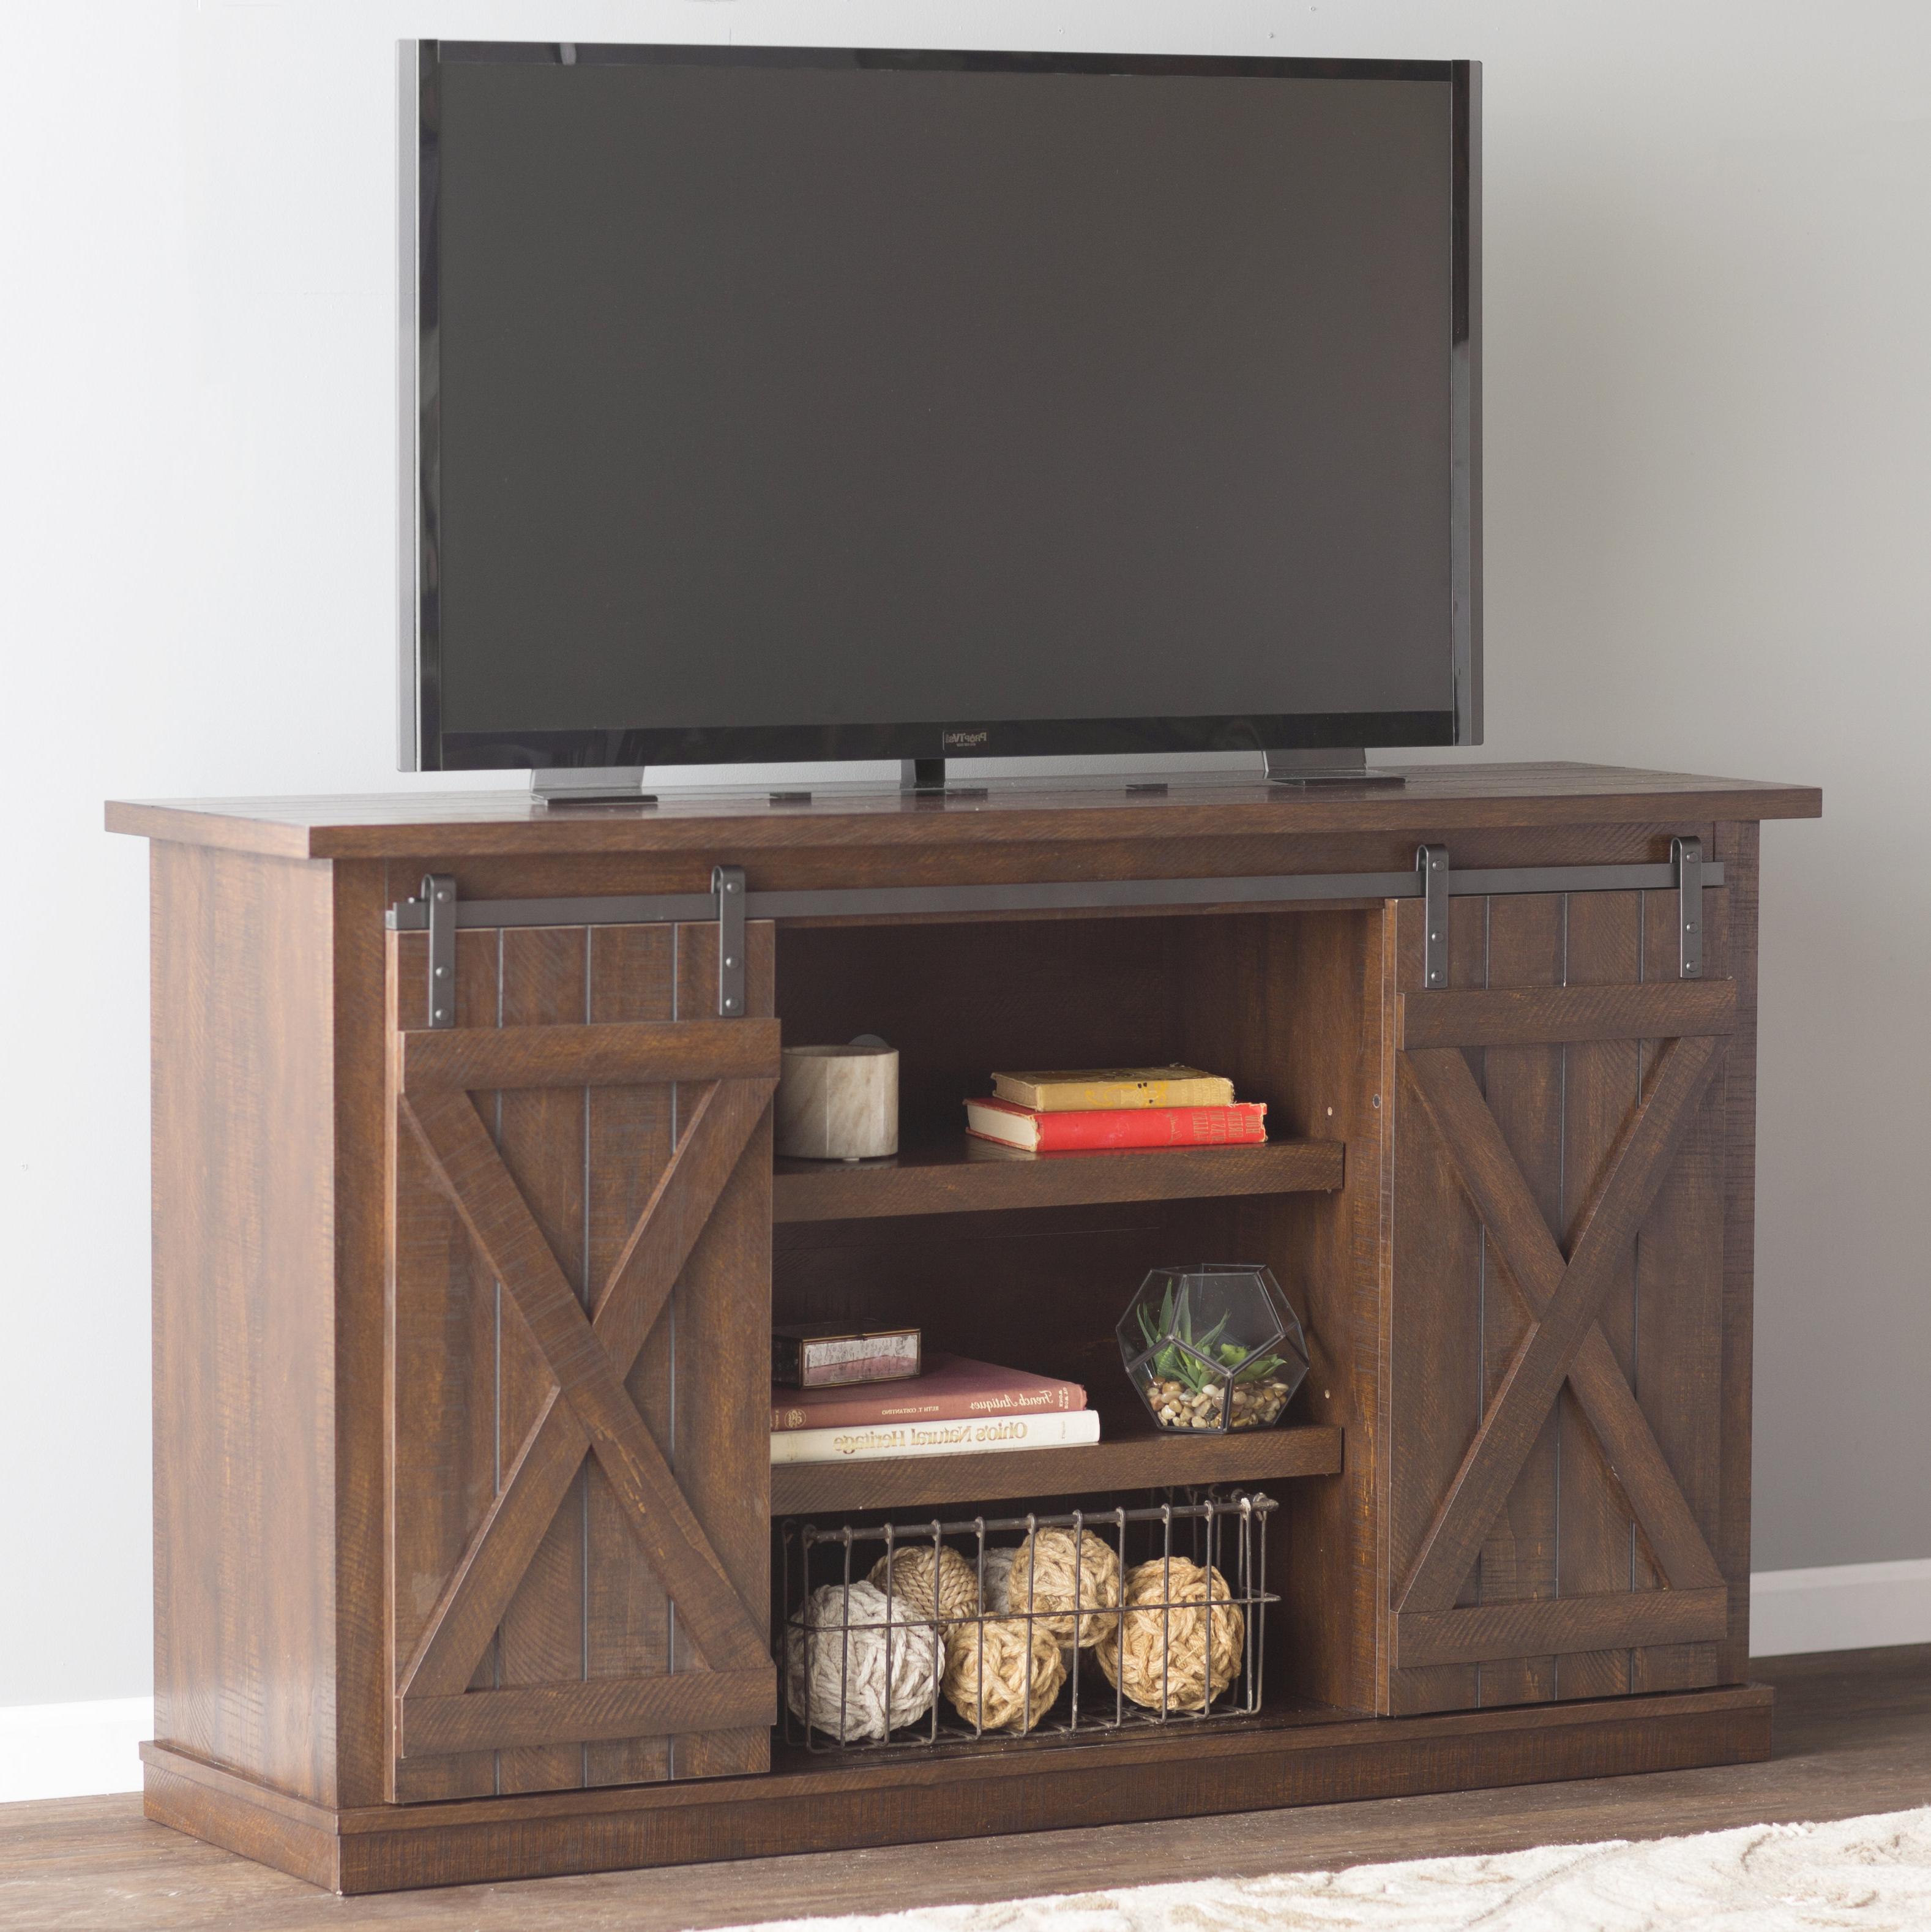 Widely Used Tv Stands & Entertainment Centers You'll Love Throughout Glass Front Tv Stands (View 20 of 20)